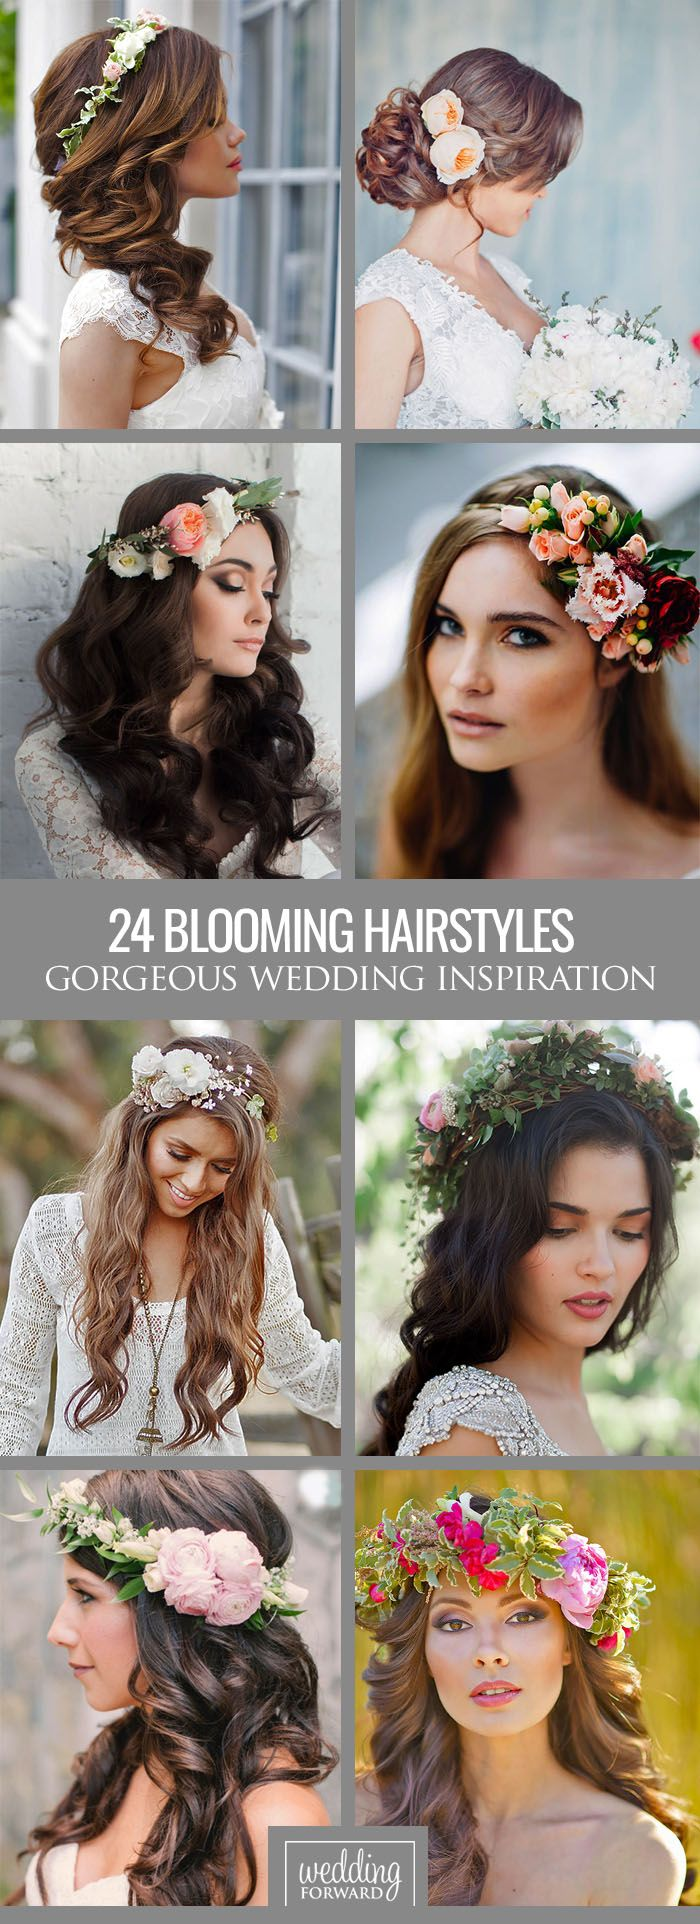 24 Gorgeous Blooming Wedding Hair Bouquets ❤ See our gallery of blooming wedding hair and be inspired! See more: http://www.weddingforward.com/blooming-wedding-hair-bouquets/ #weddings #hairstyles